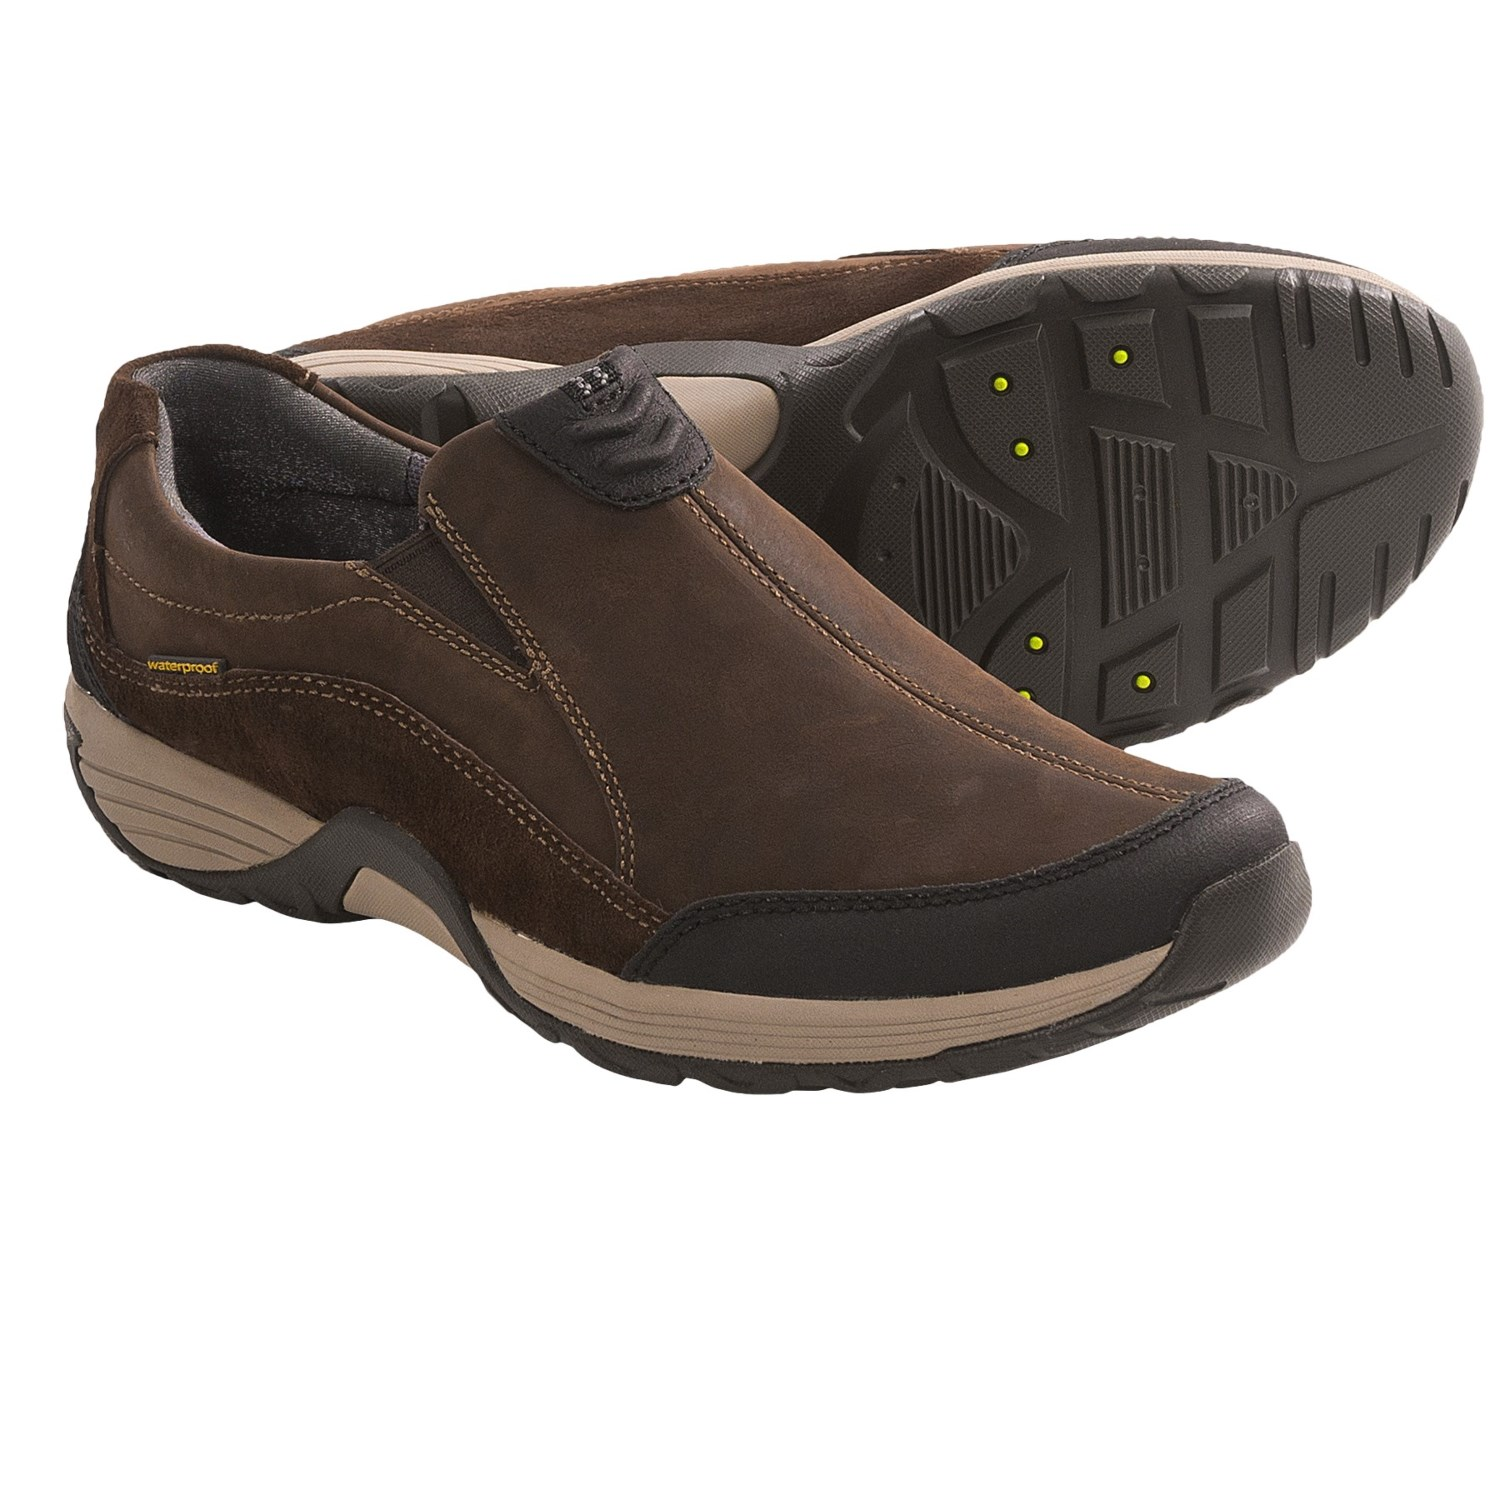 Clarks men's slip on shoes are created to make life easier. The laceless design provides added convenience, but is stylish enough to be worn with jeans or trousers. With the best Clarks men's slip on shoes selection available, free-cabinetfile-downloaded.ga has the footwear every man is looking for.